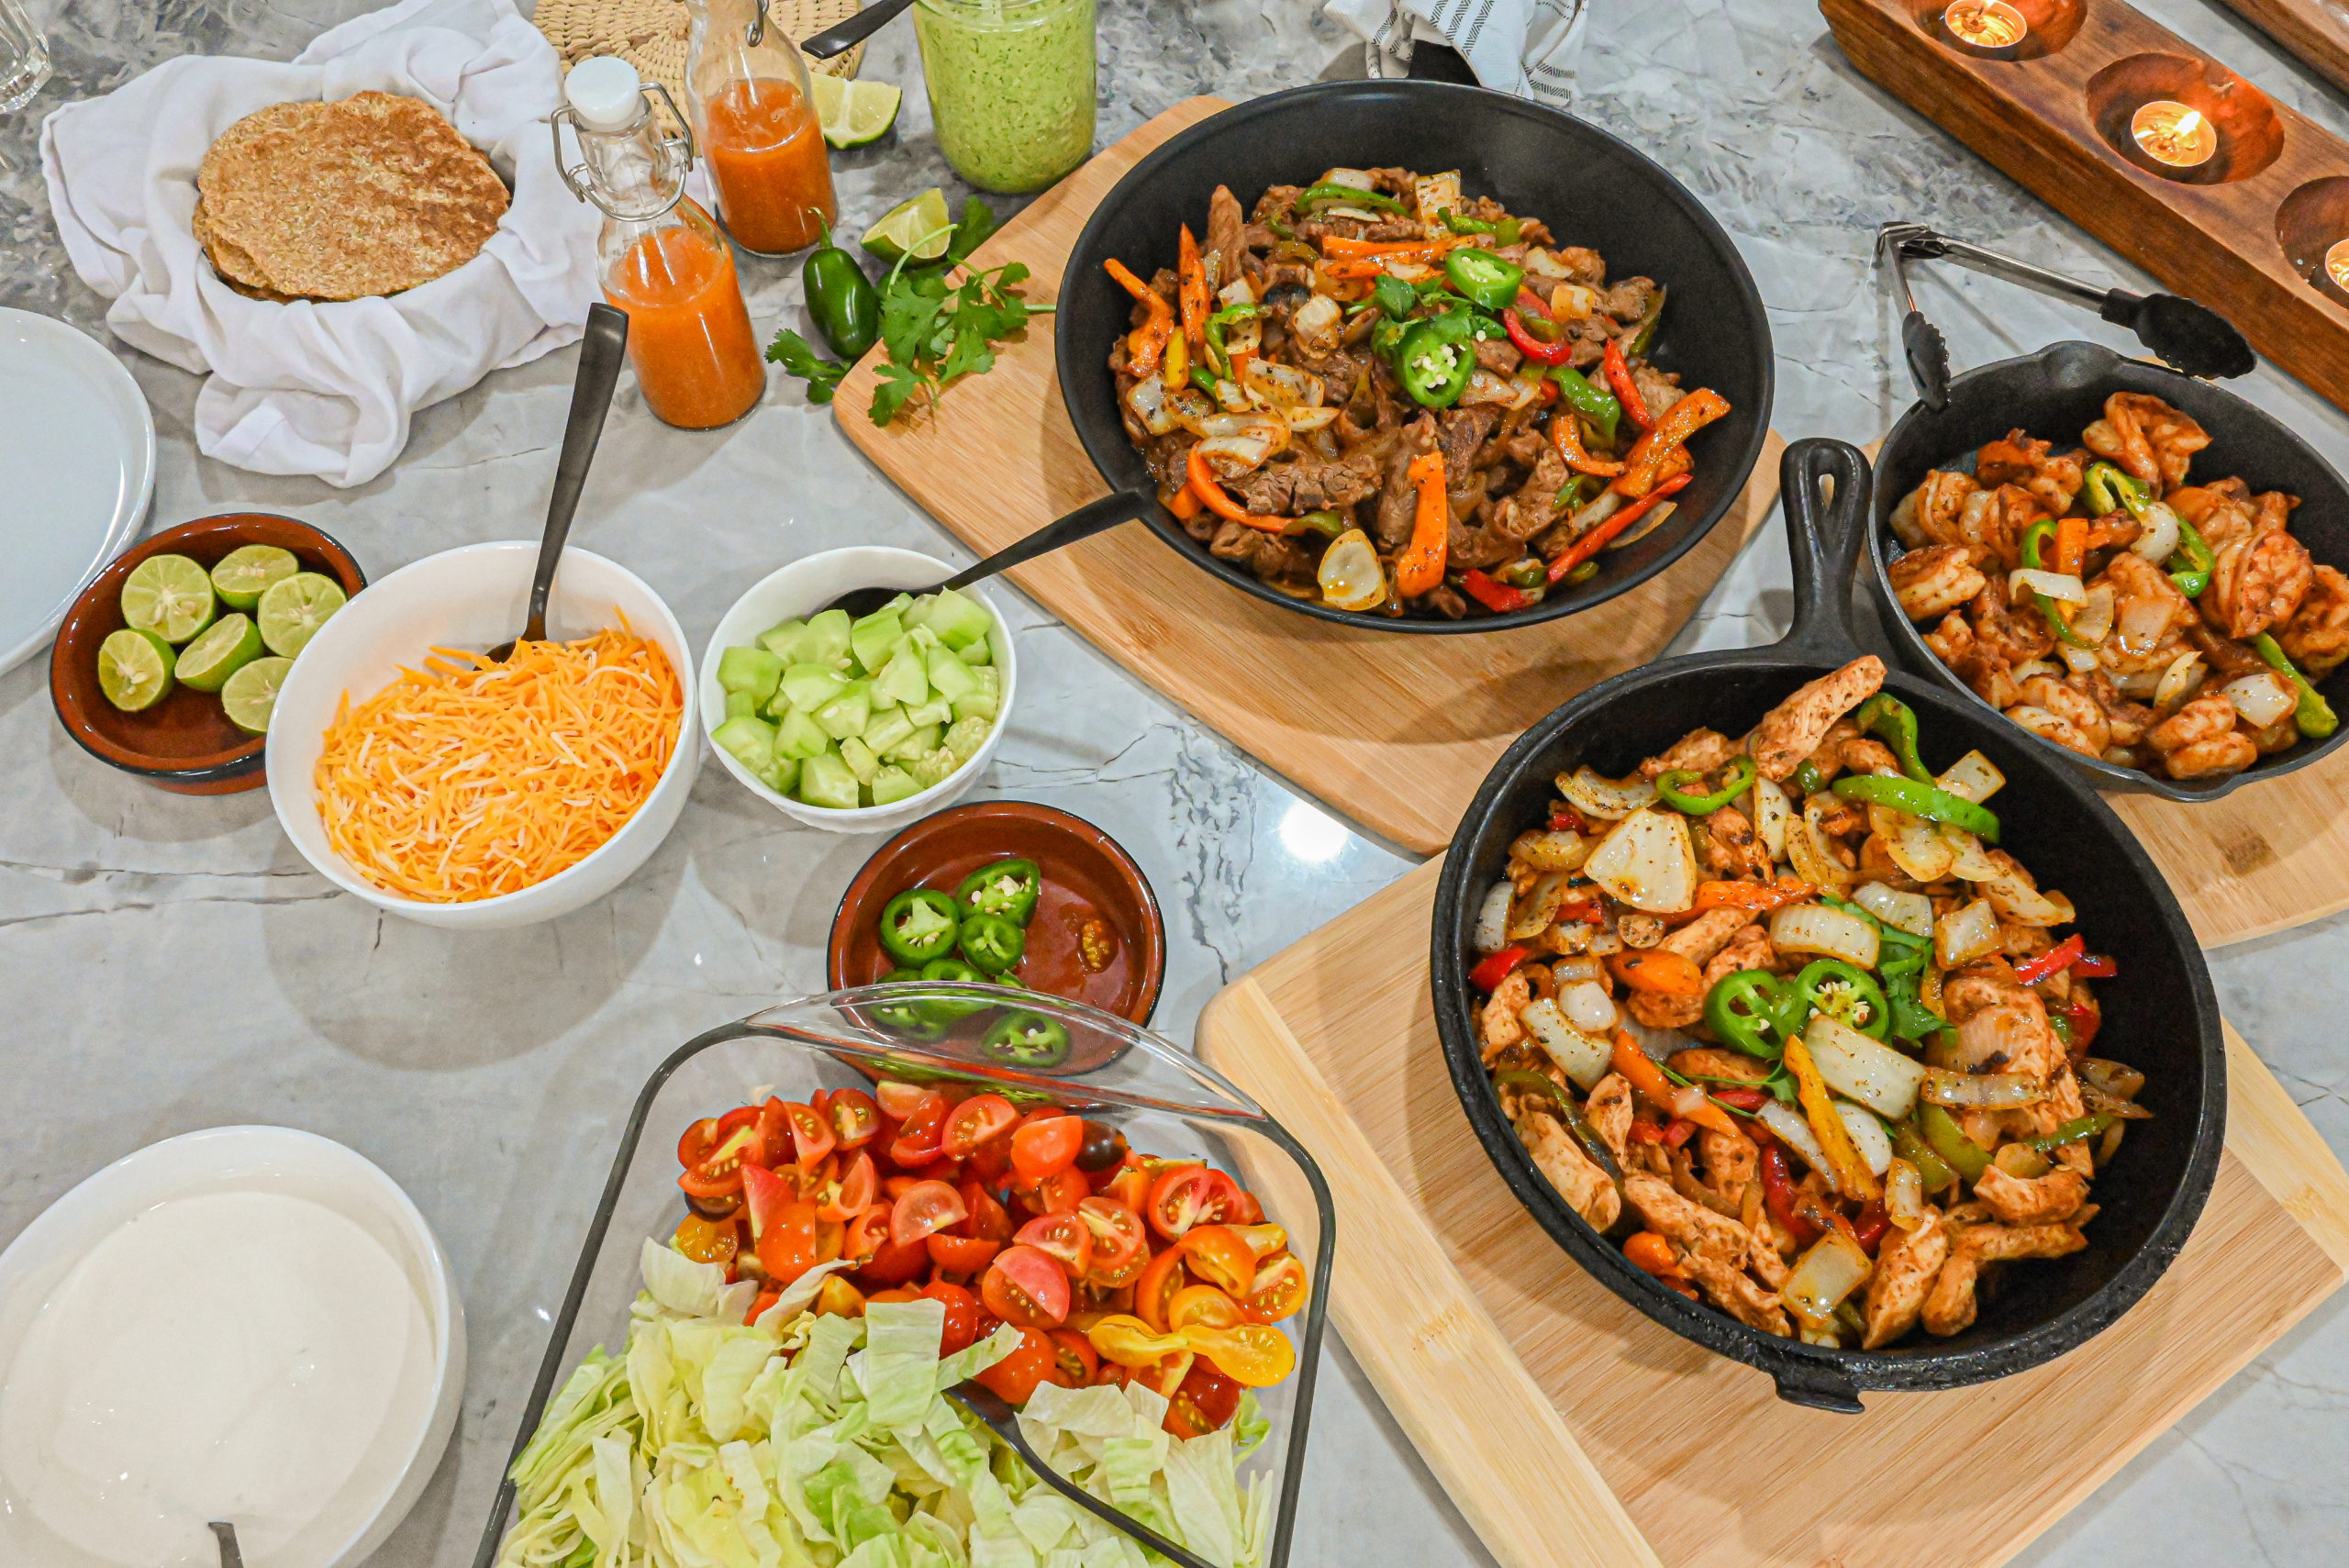 keto fajitas in skillets on counter with various sides surrounding